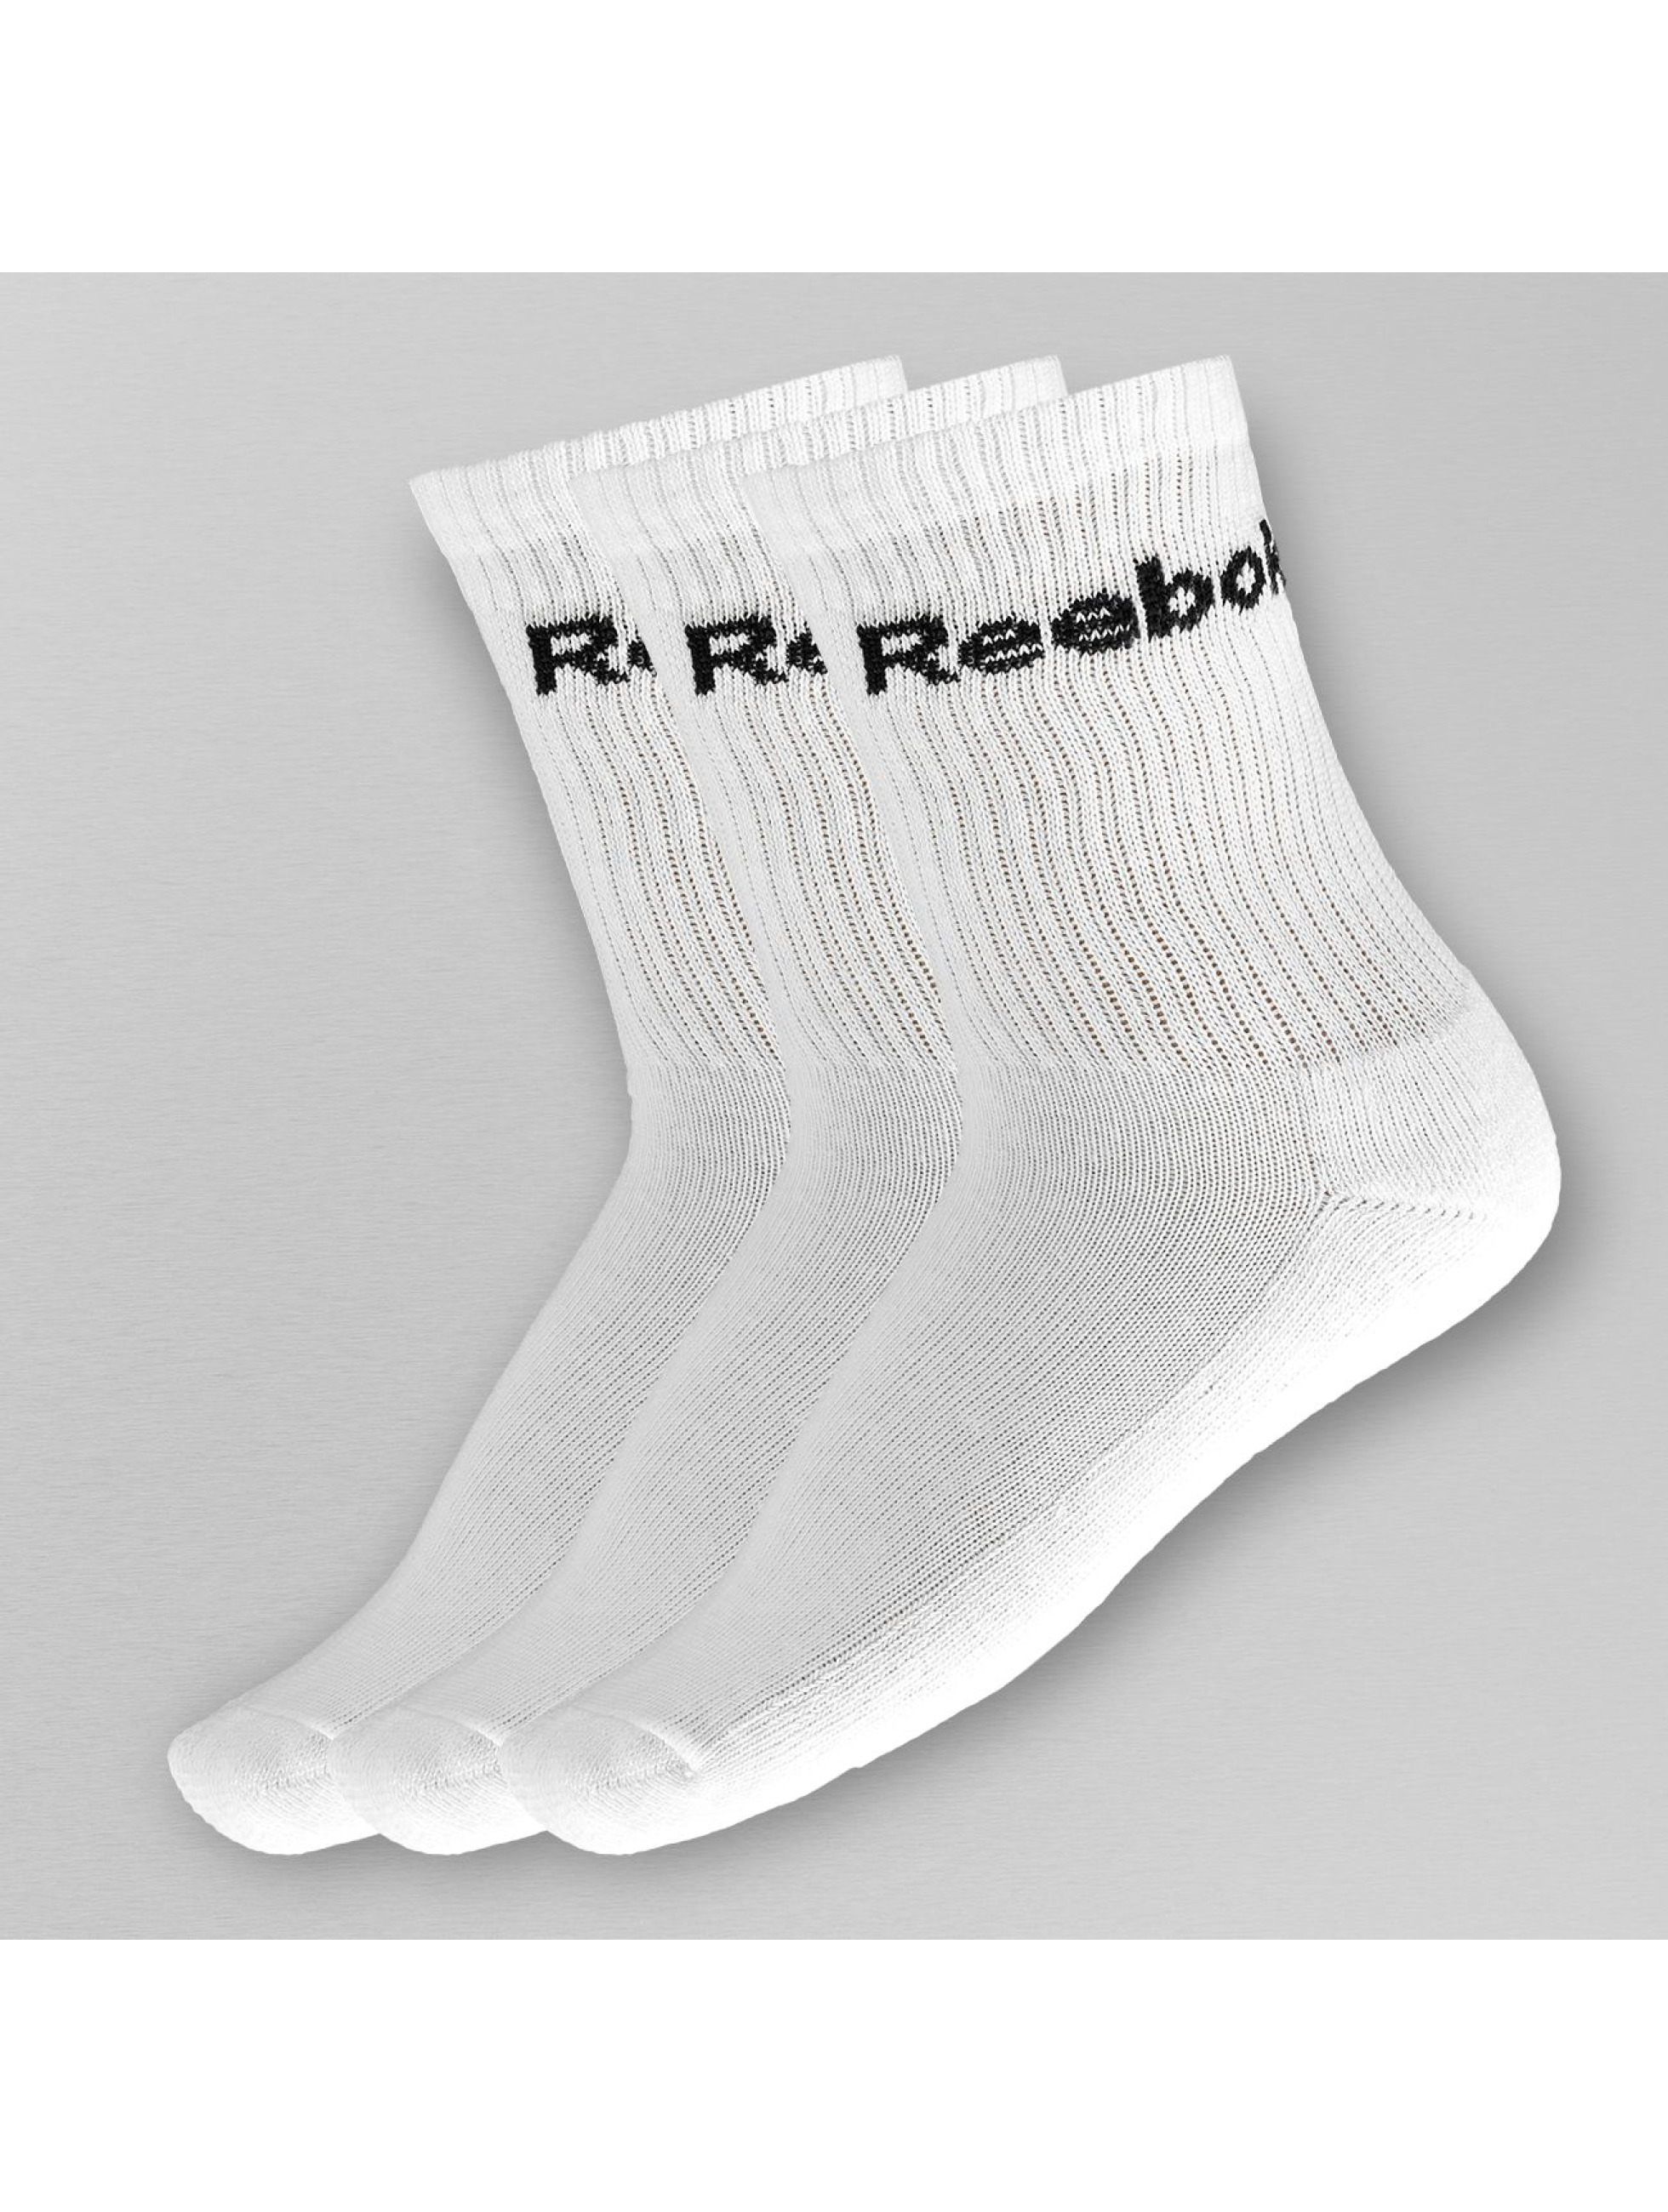 Reebok Socken 3 for 2 Crew weiß